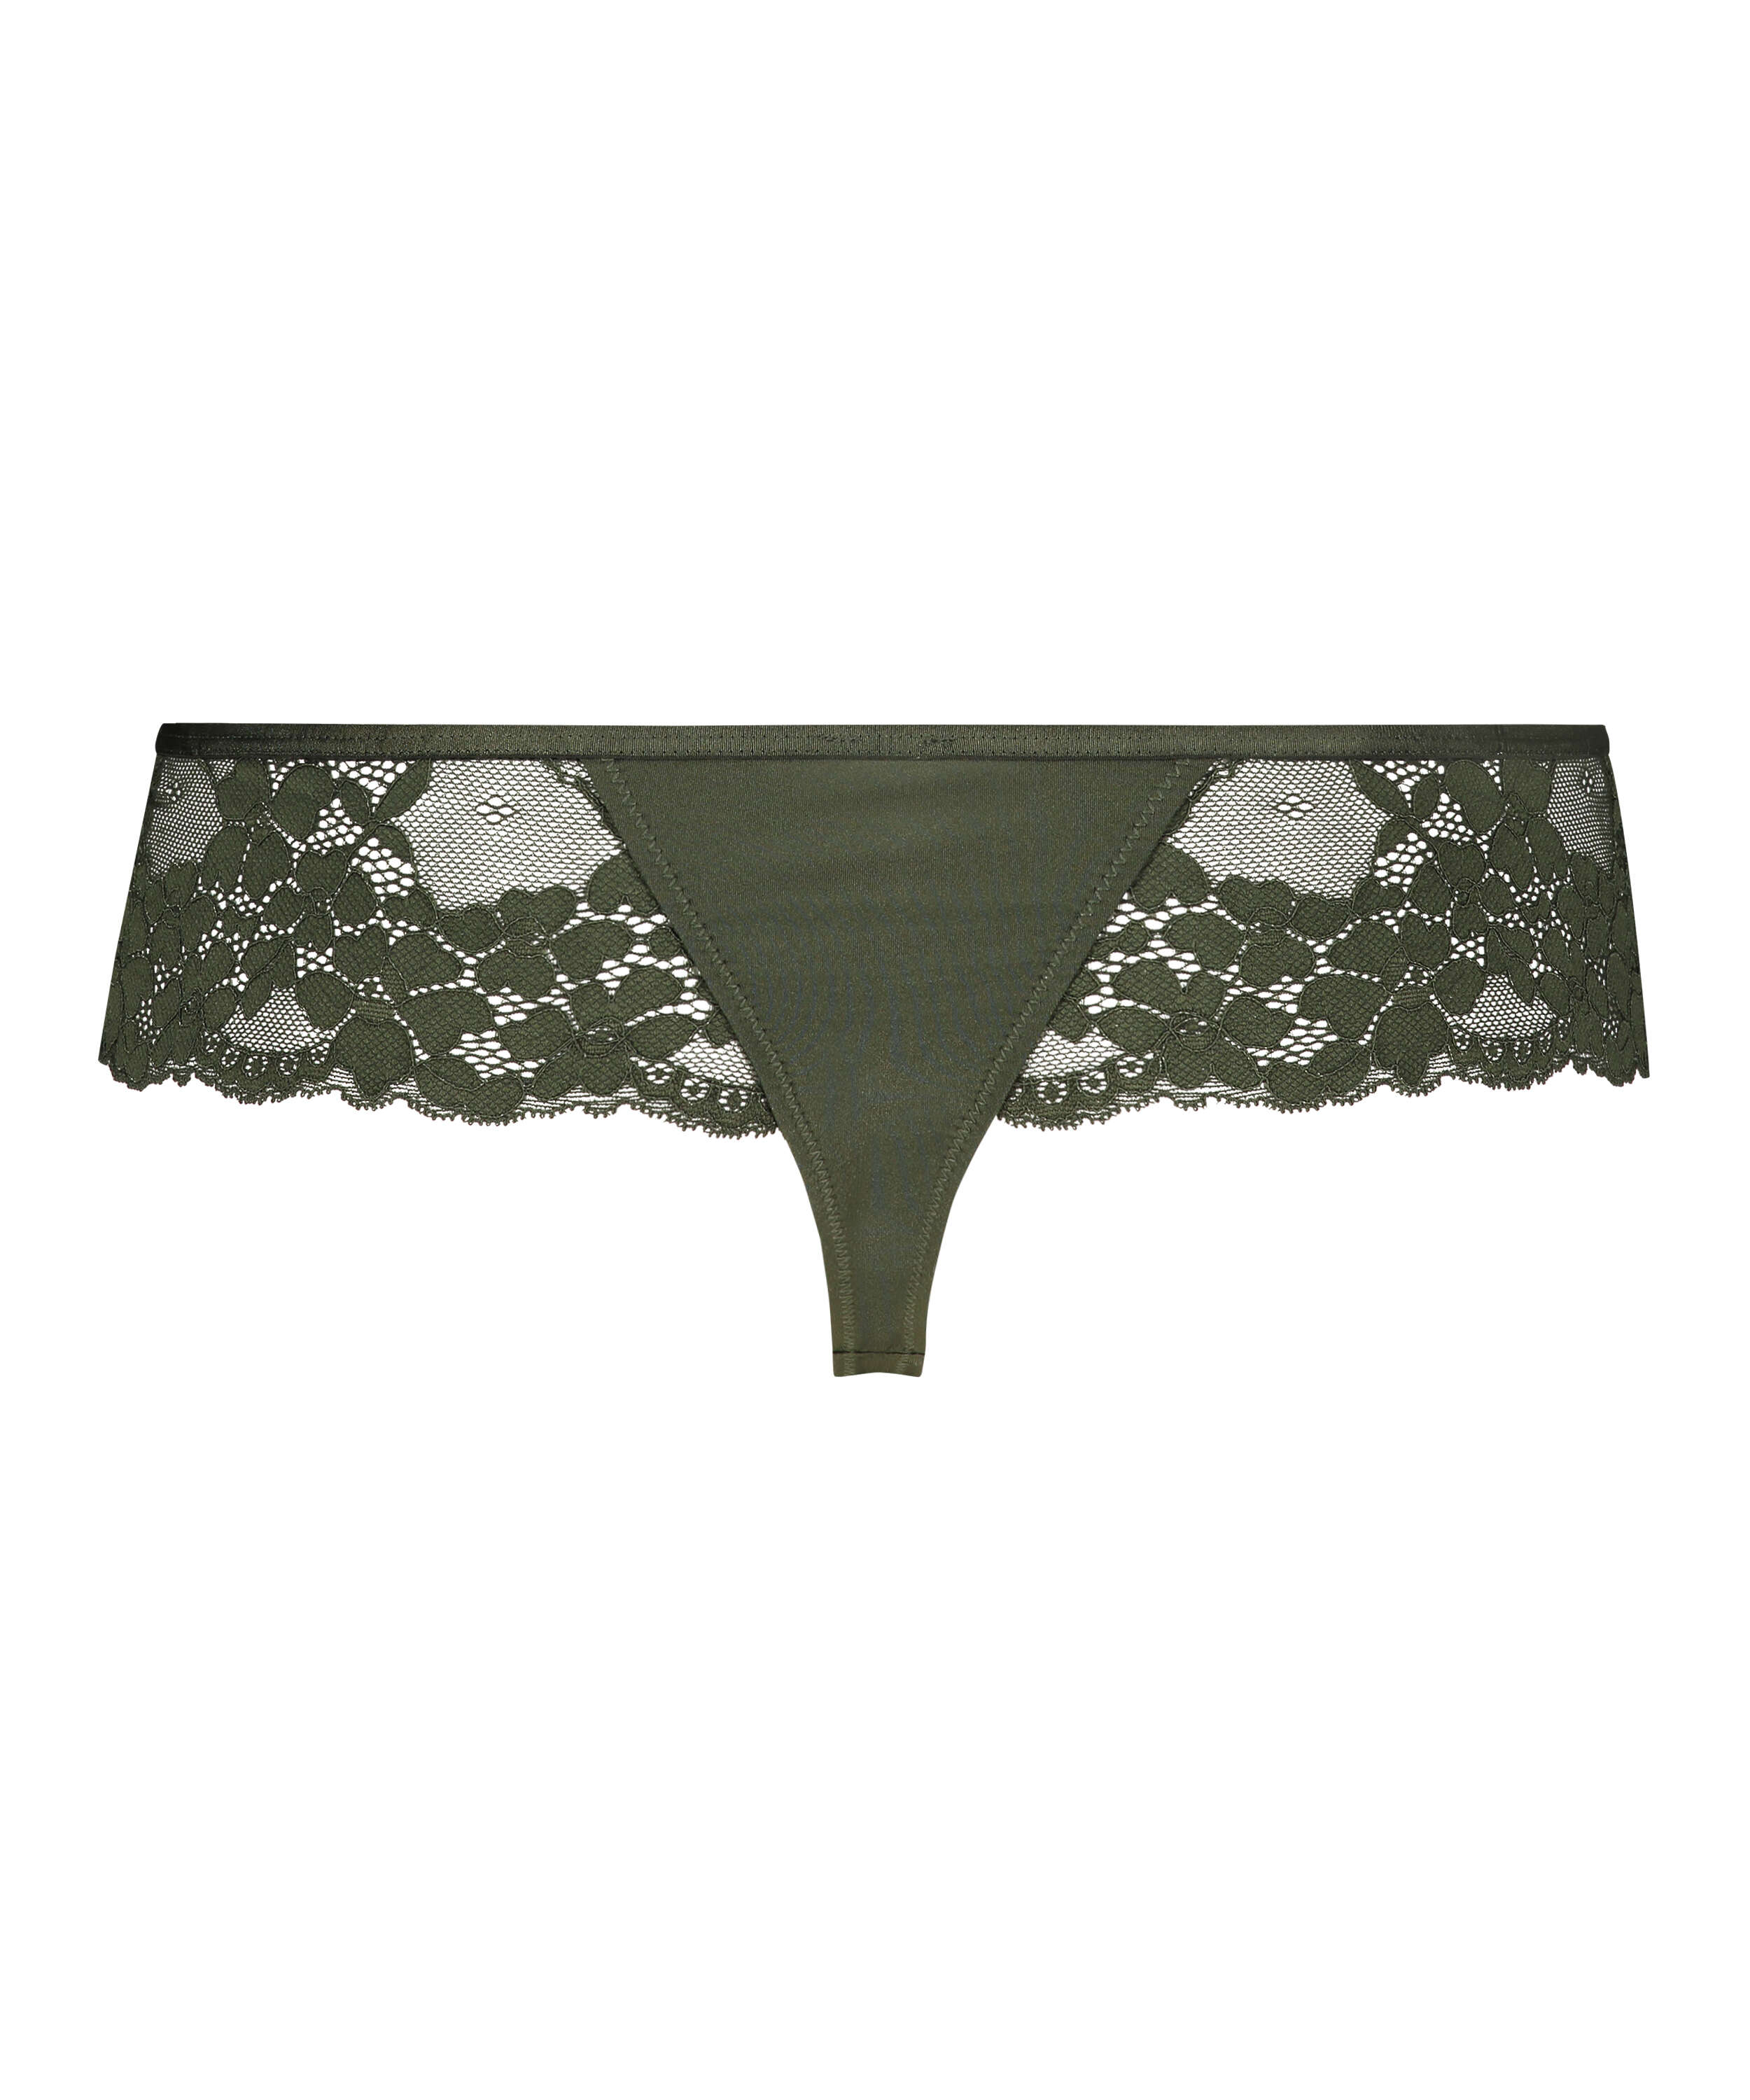 Nellie Thong Boxers, Green, main